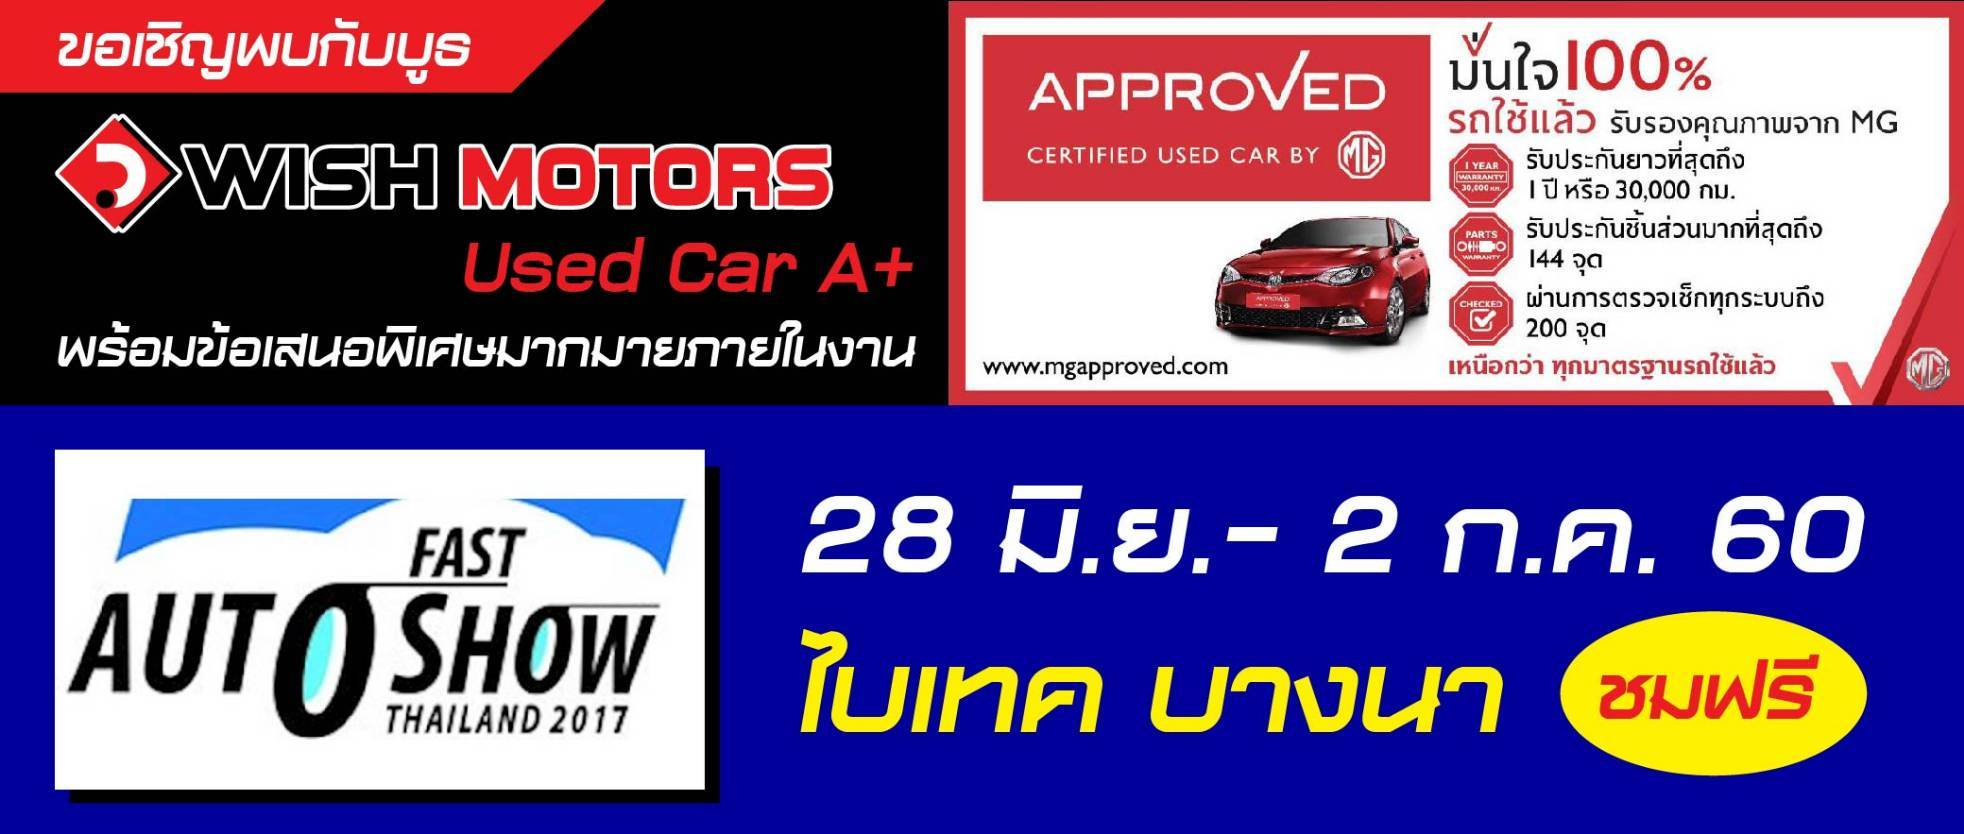 งานรถ mg WishMotors Used Car A+